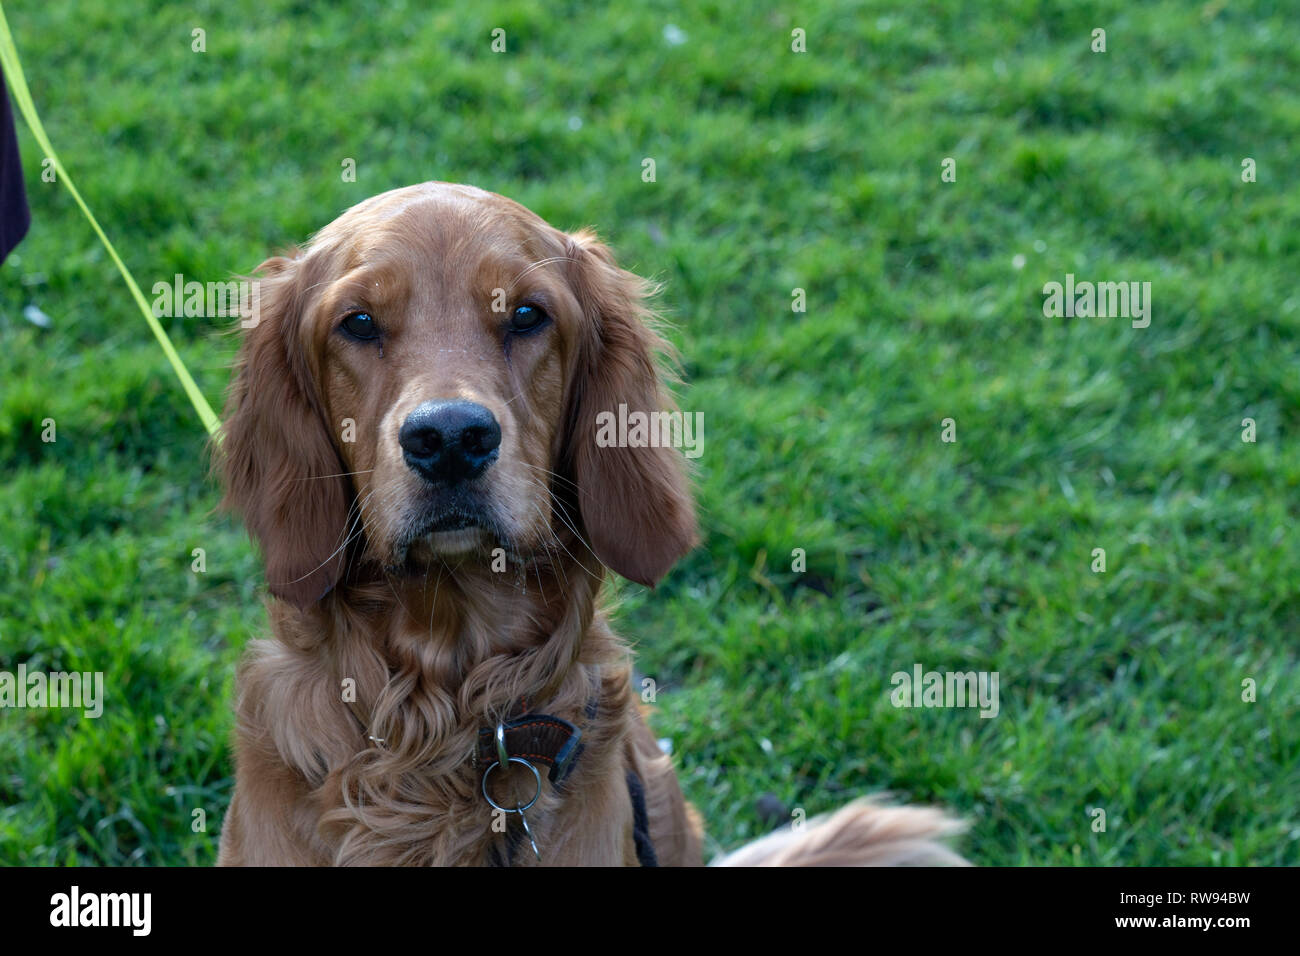 Irish setter Dog with long ears looking at the camera. Stock Photo